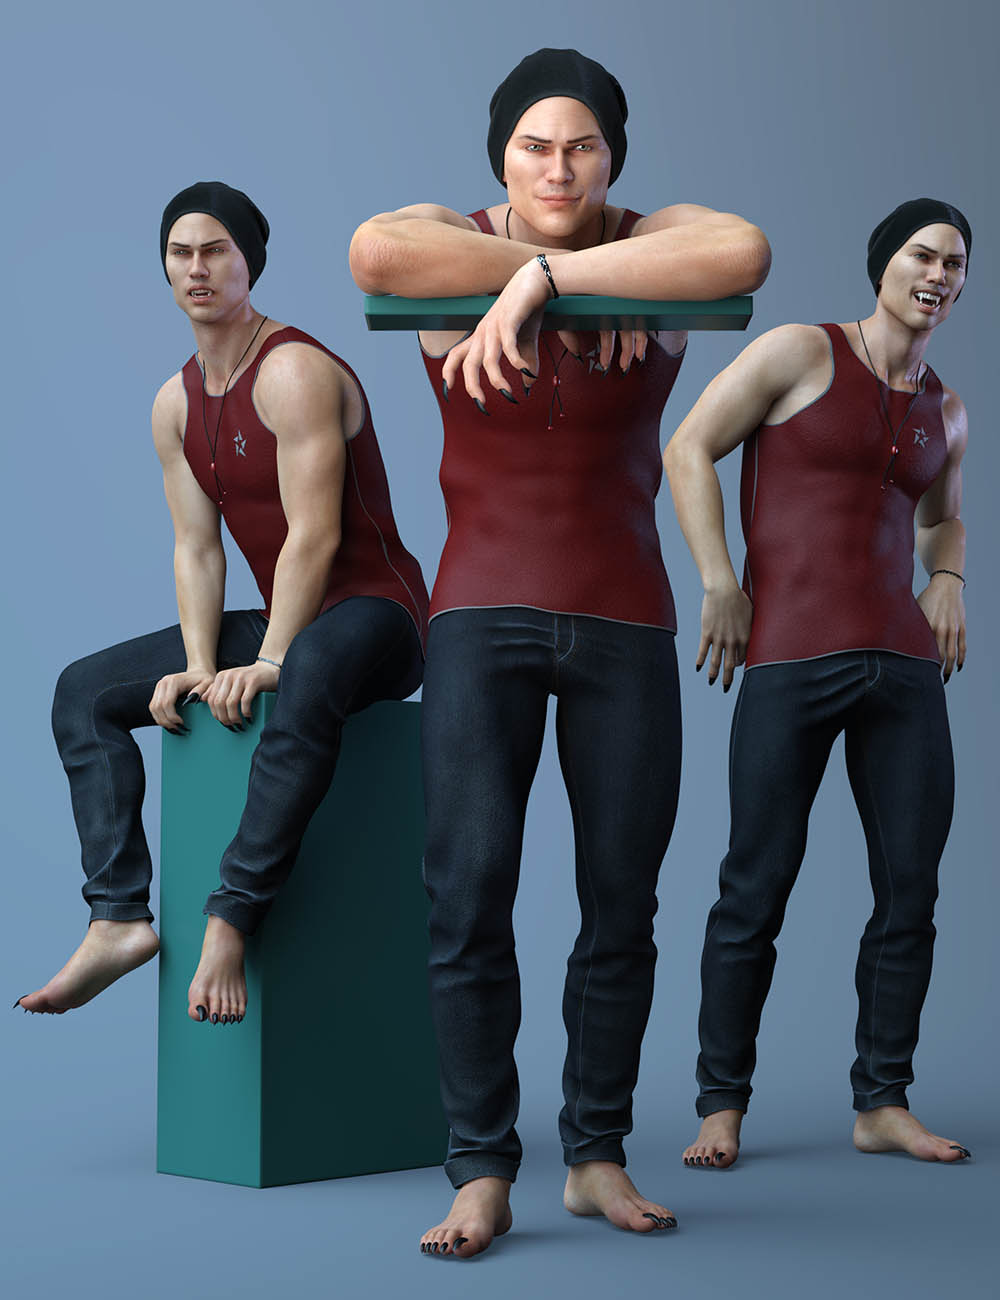 Poses and Expressions for Landon 8 and Genesis 8 Male by: Capsces Digital Ink, 3D Models by Daz 3D